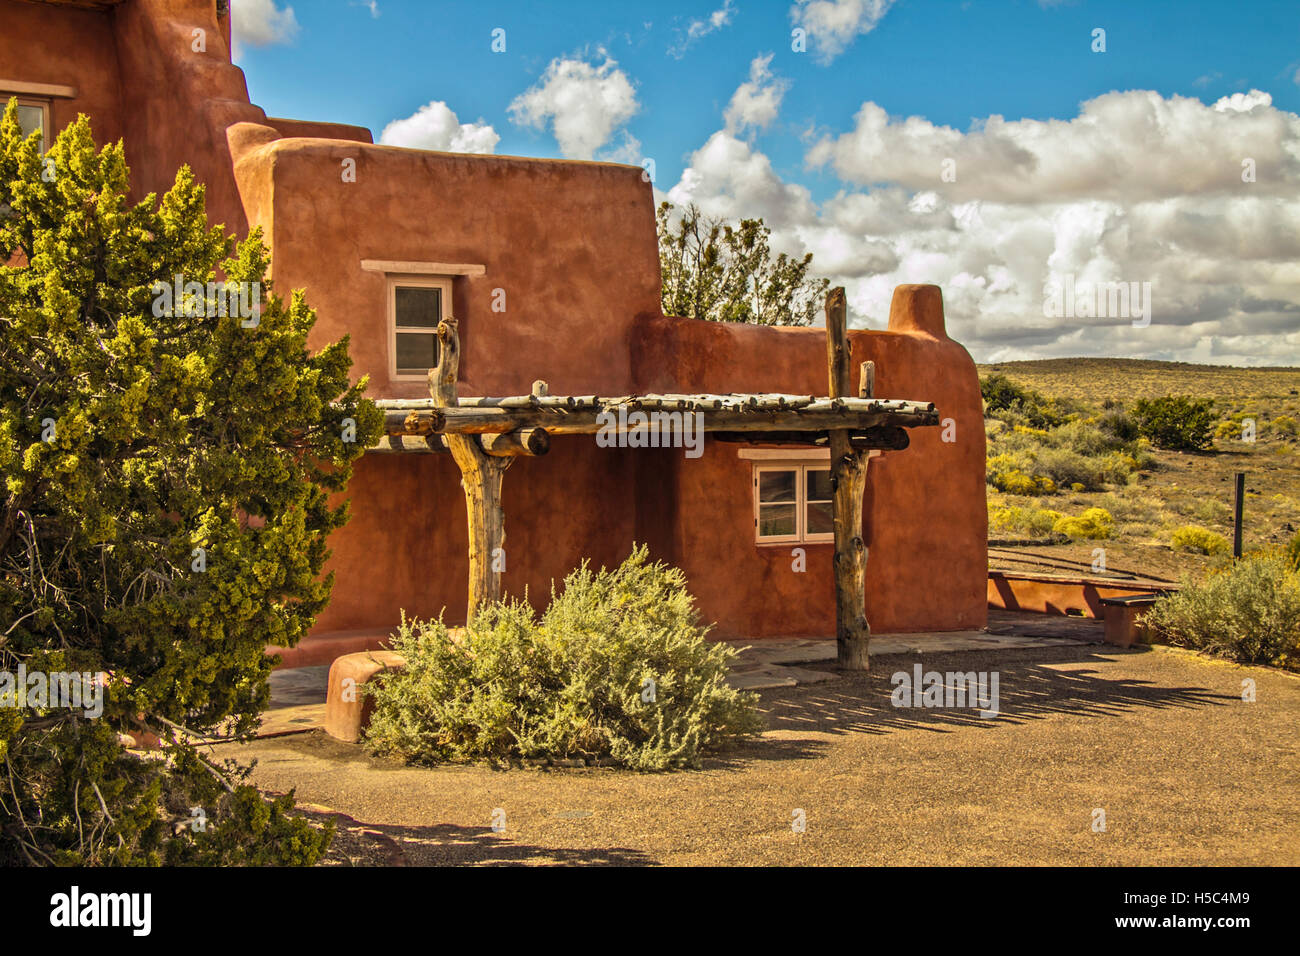 Simple Adobe Building Home - adobe-house-new-mexico-native-american-adobe-buildings-architecture-H5C4M9  Photograph_759837.jpg